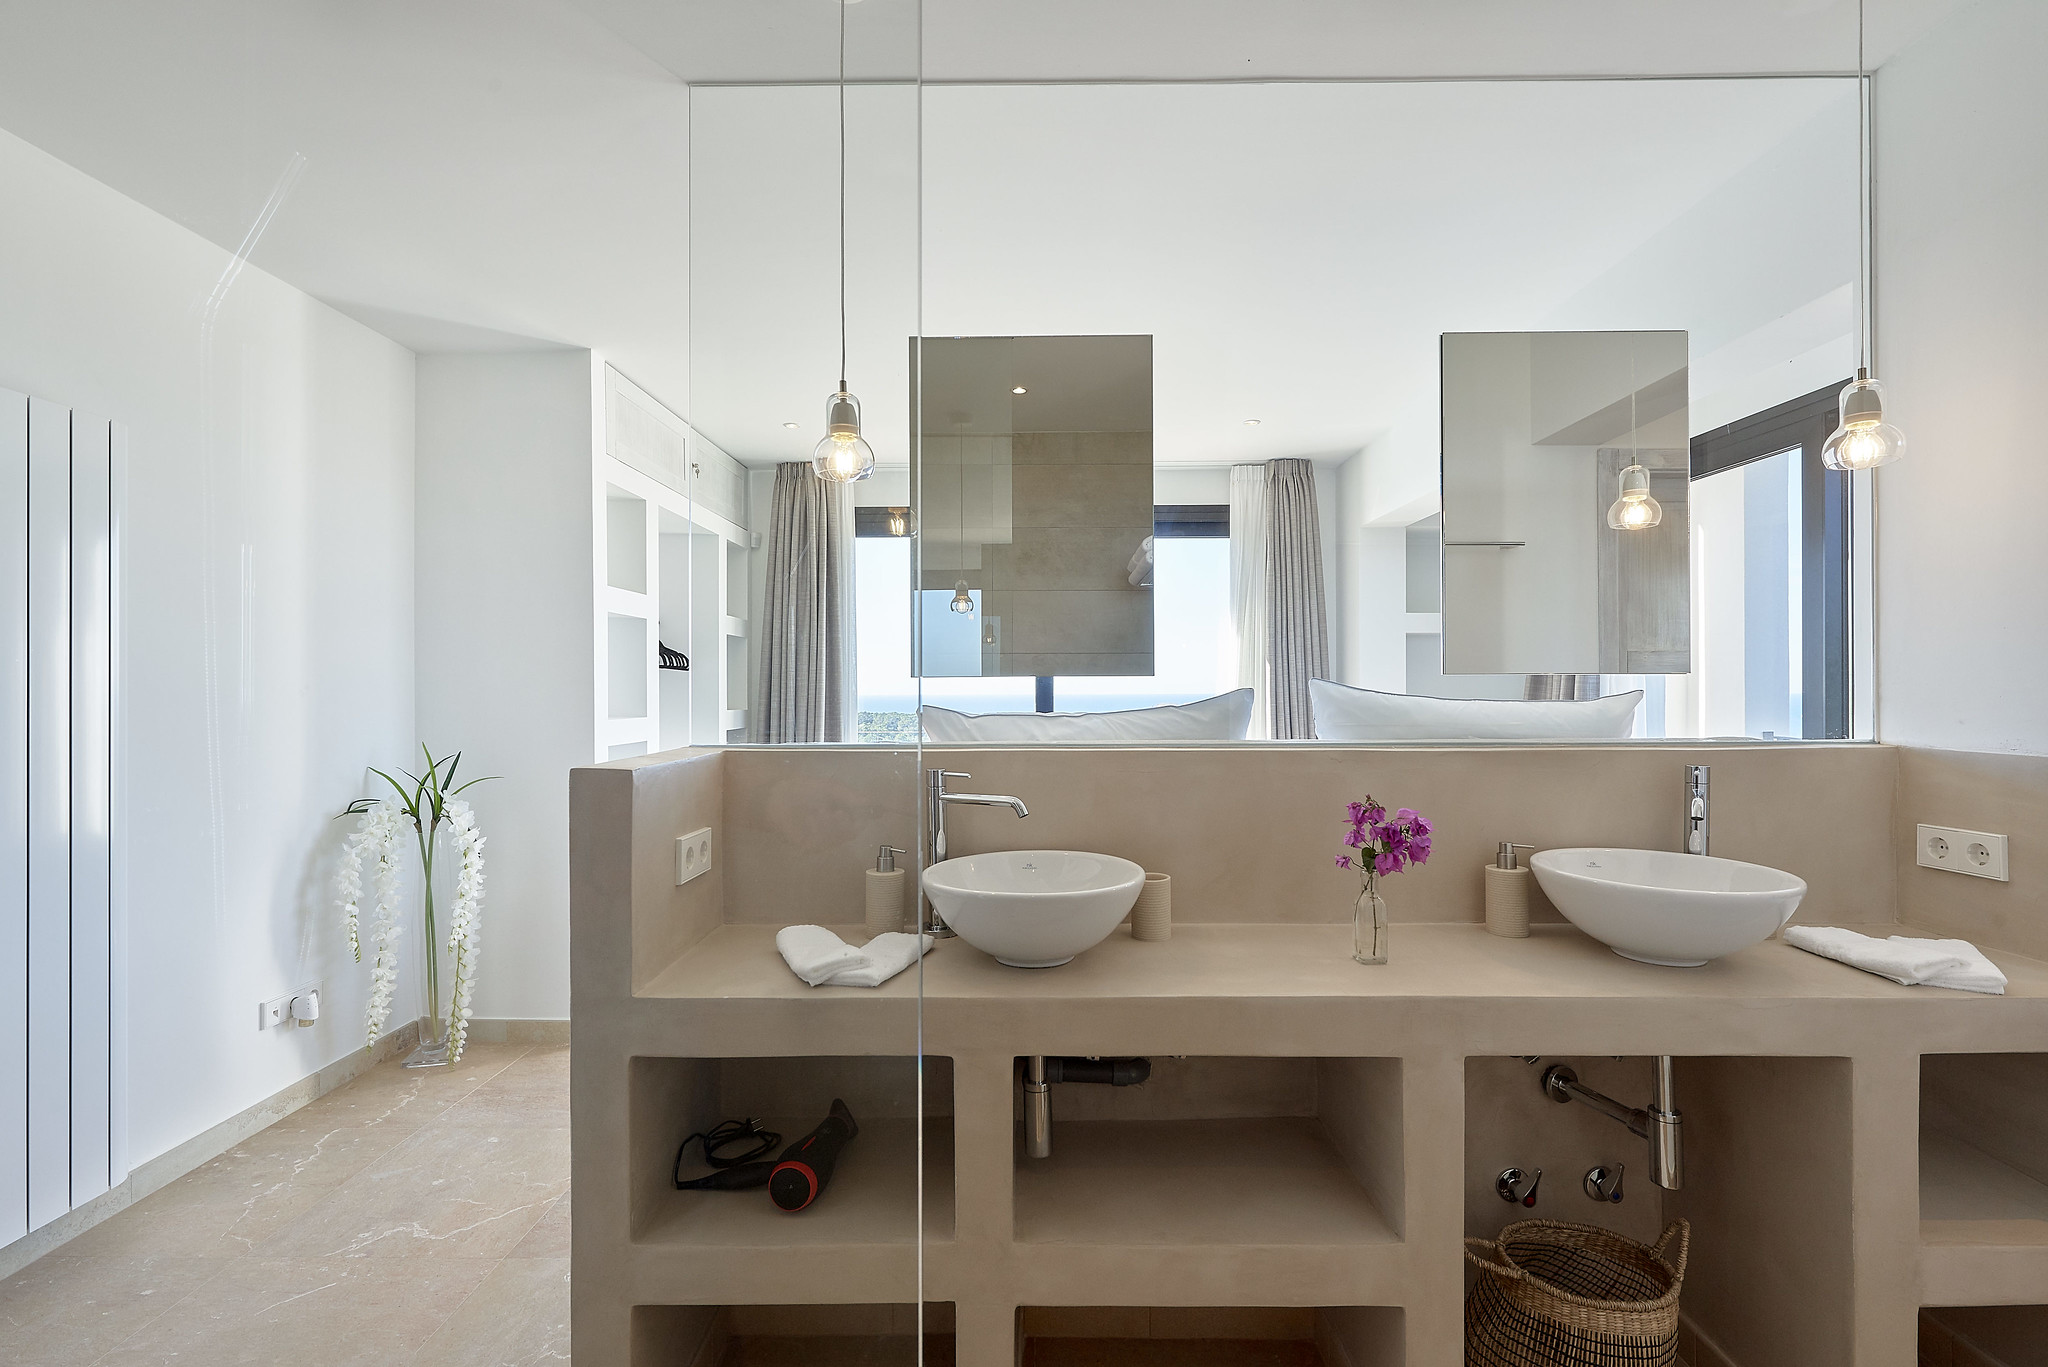 https://www.white-ibiza.com/wp-content/uploads/2020/06/white-ibiza-villas-sa-serra-interior-bathroom.jpg